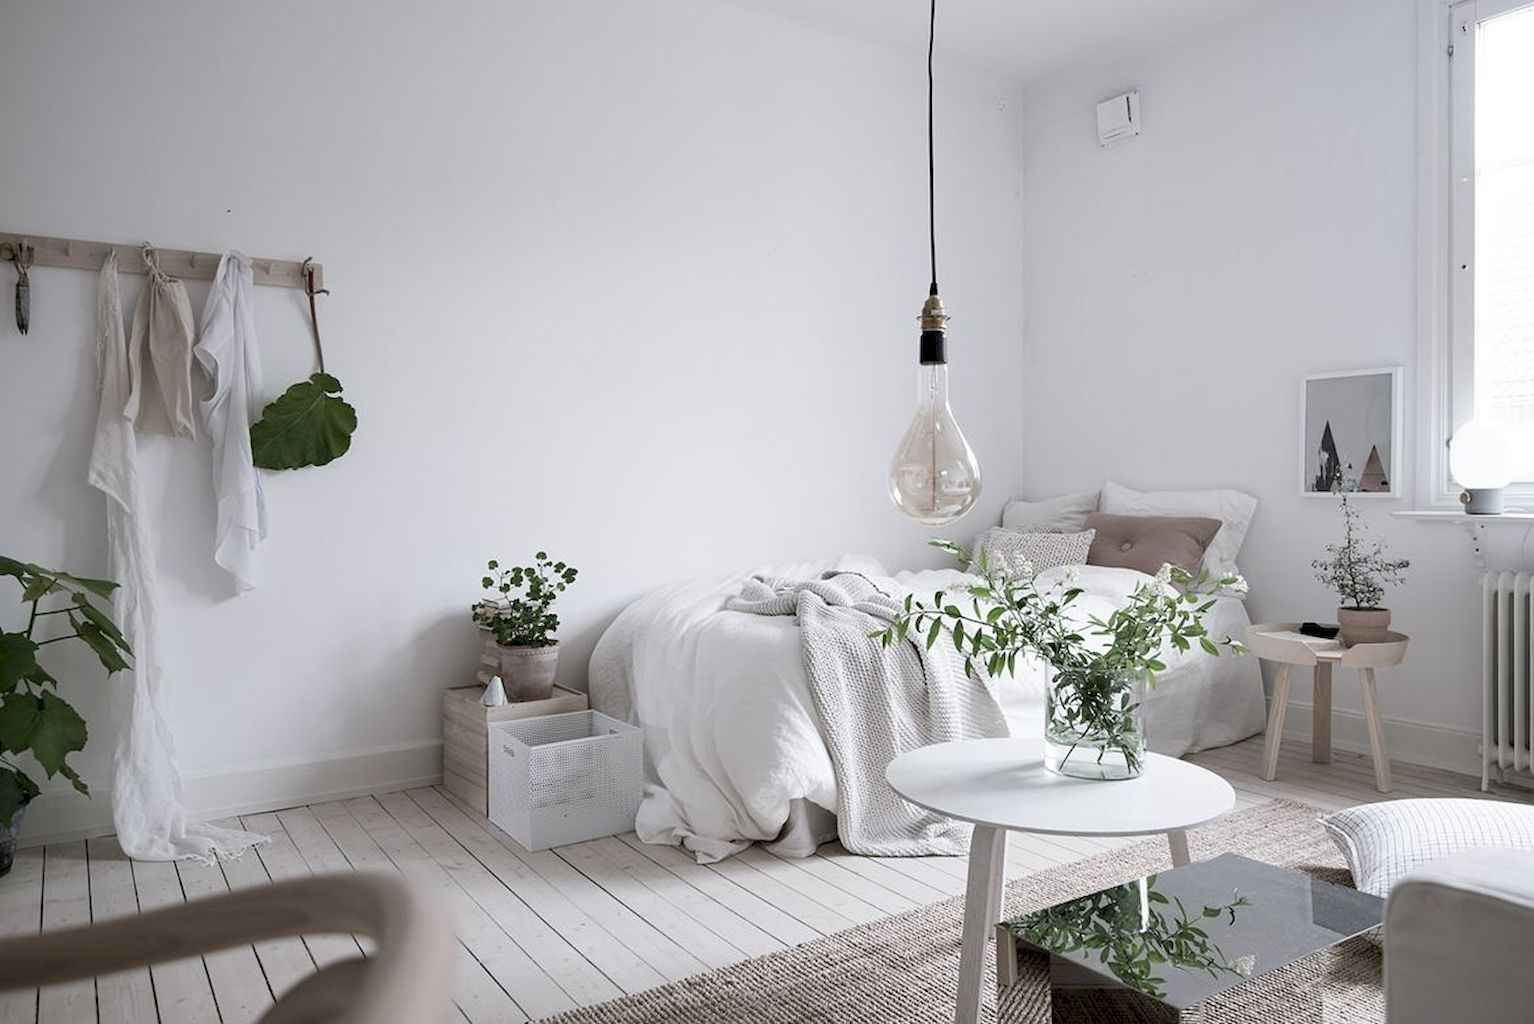 Cool small apartment decorating ideas on a budget (40)